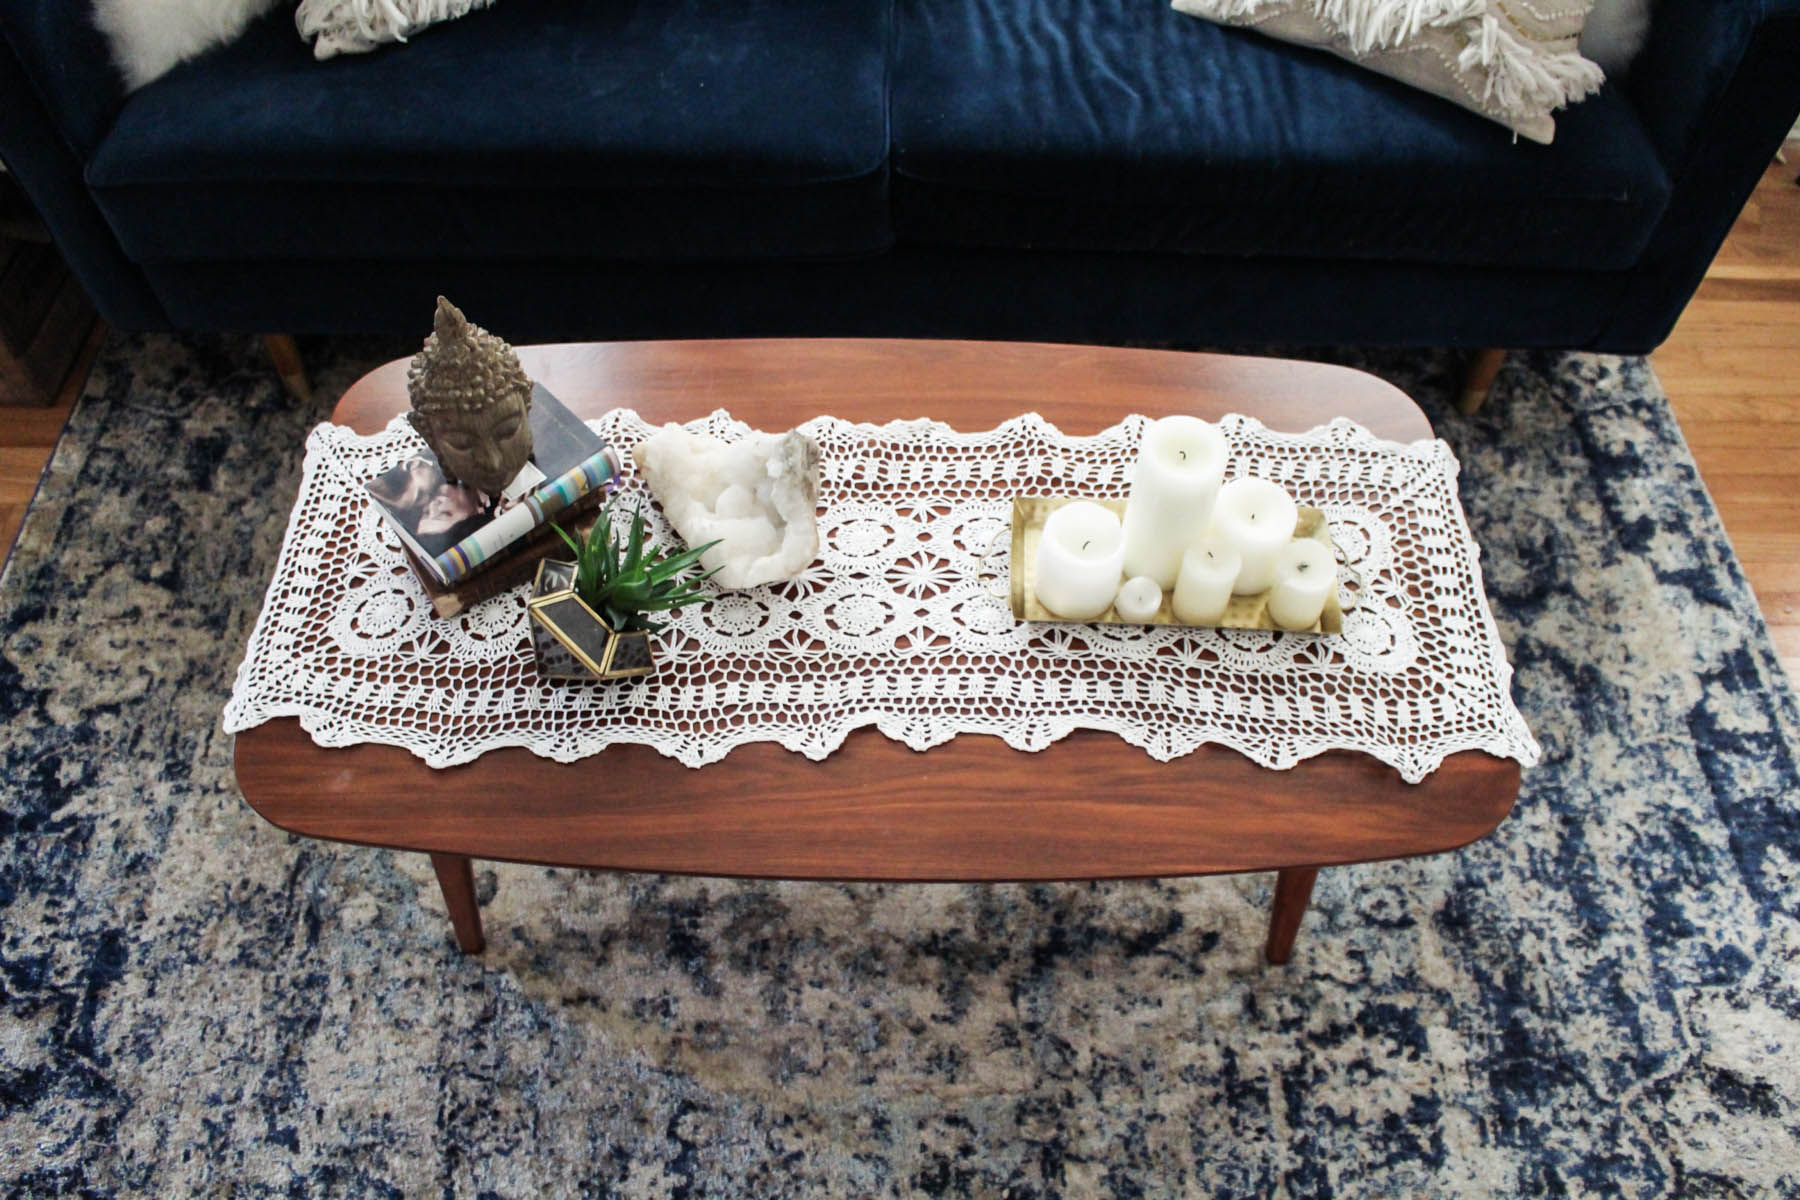 boho coffee table decor with crochet runner, candles, and Lulu & Georgia rug